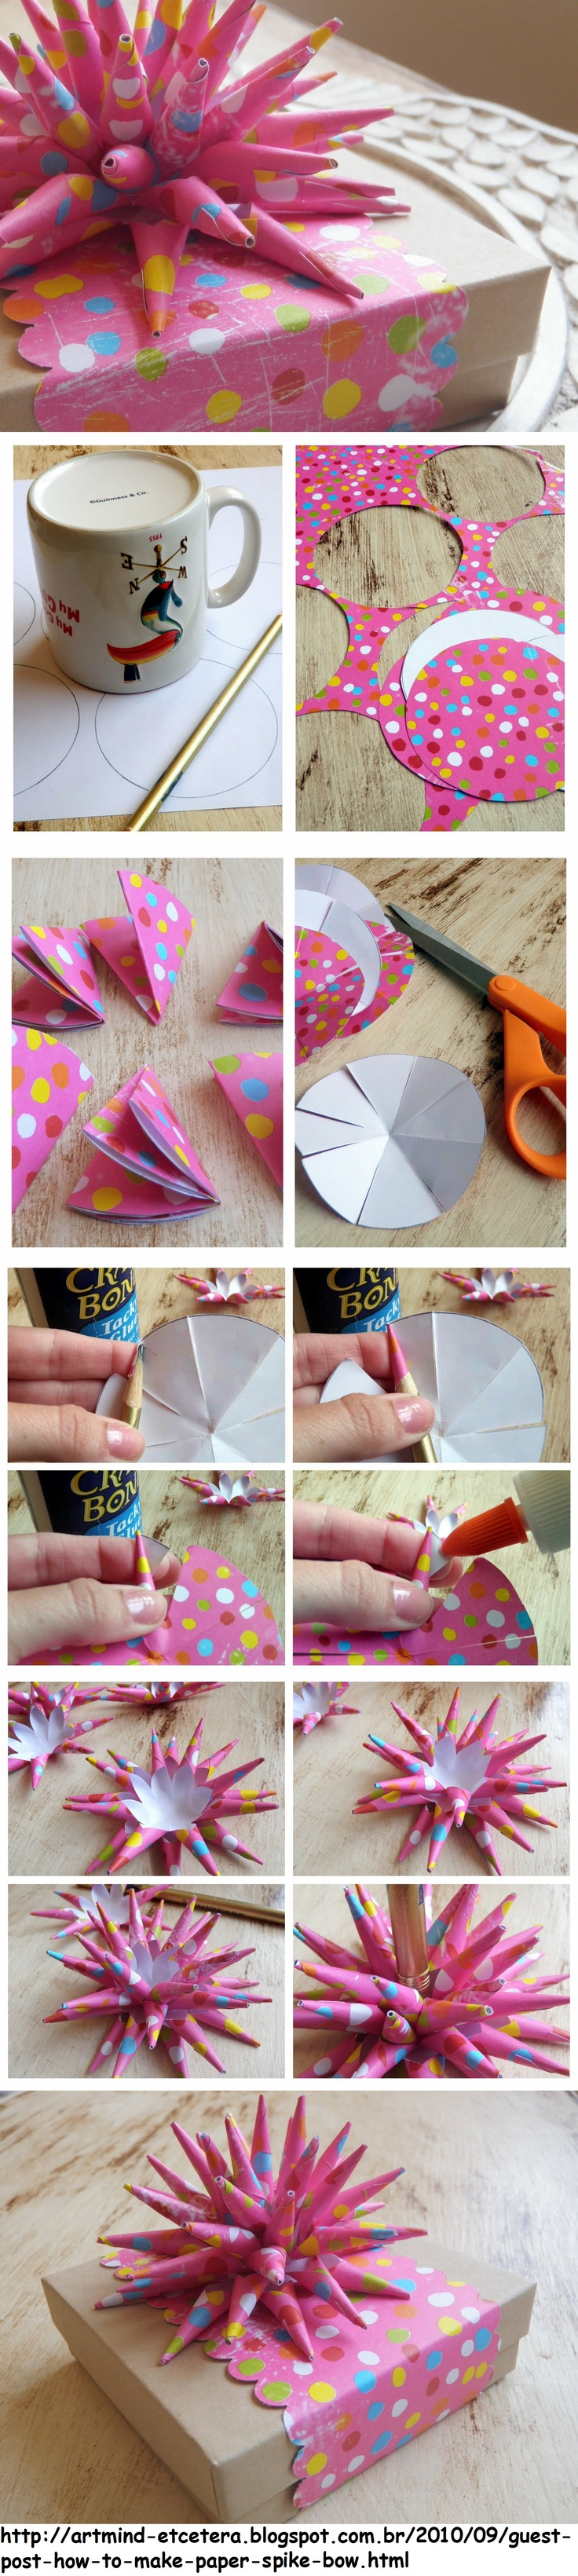 How to make a paper spike bow...cool!